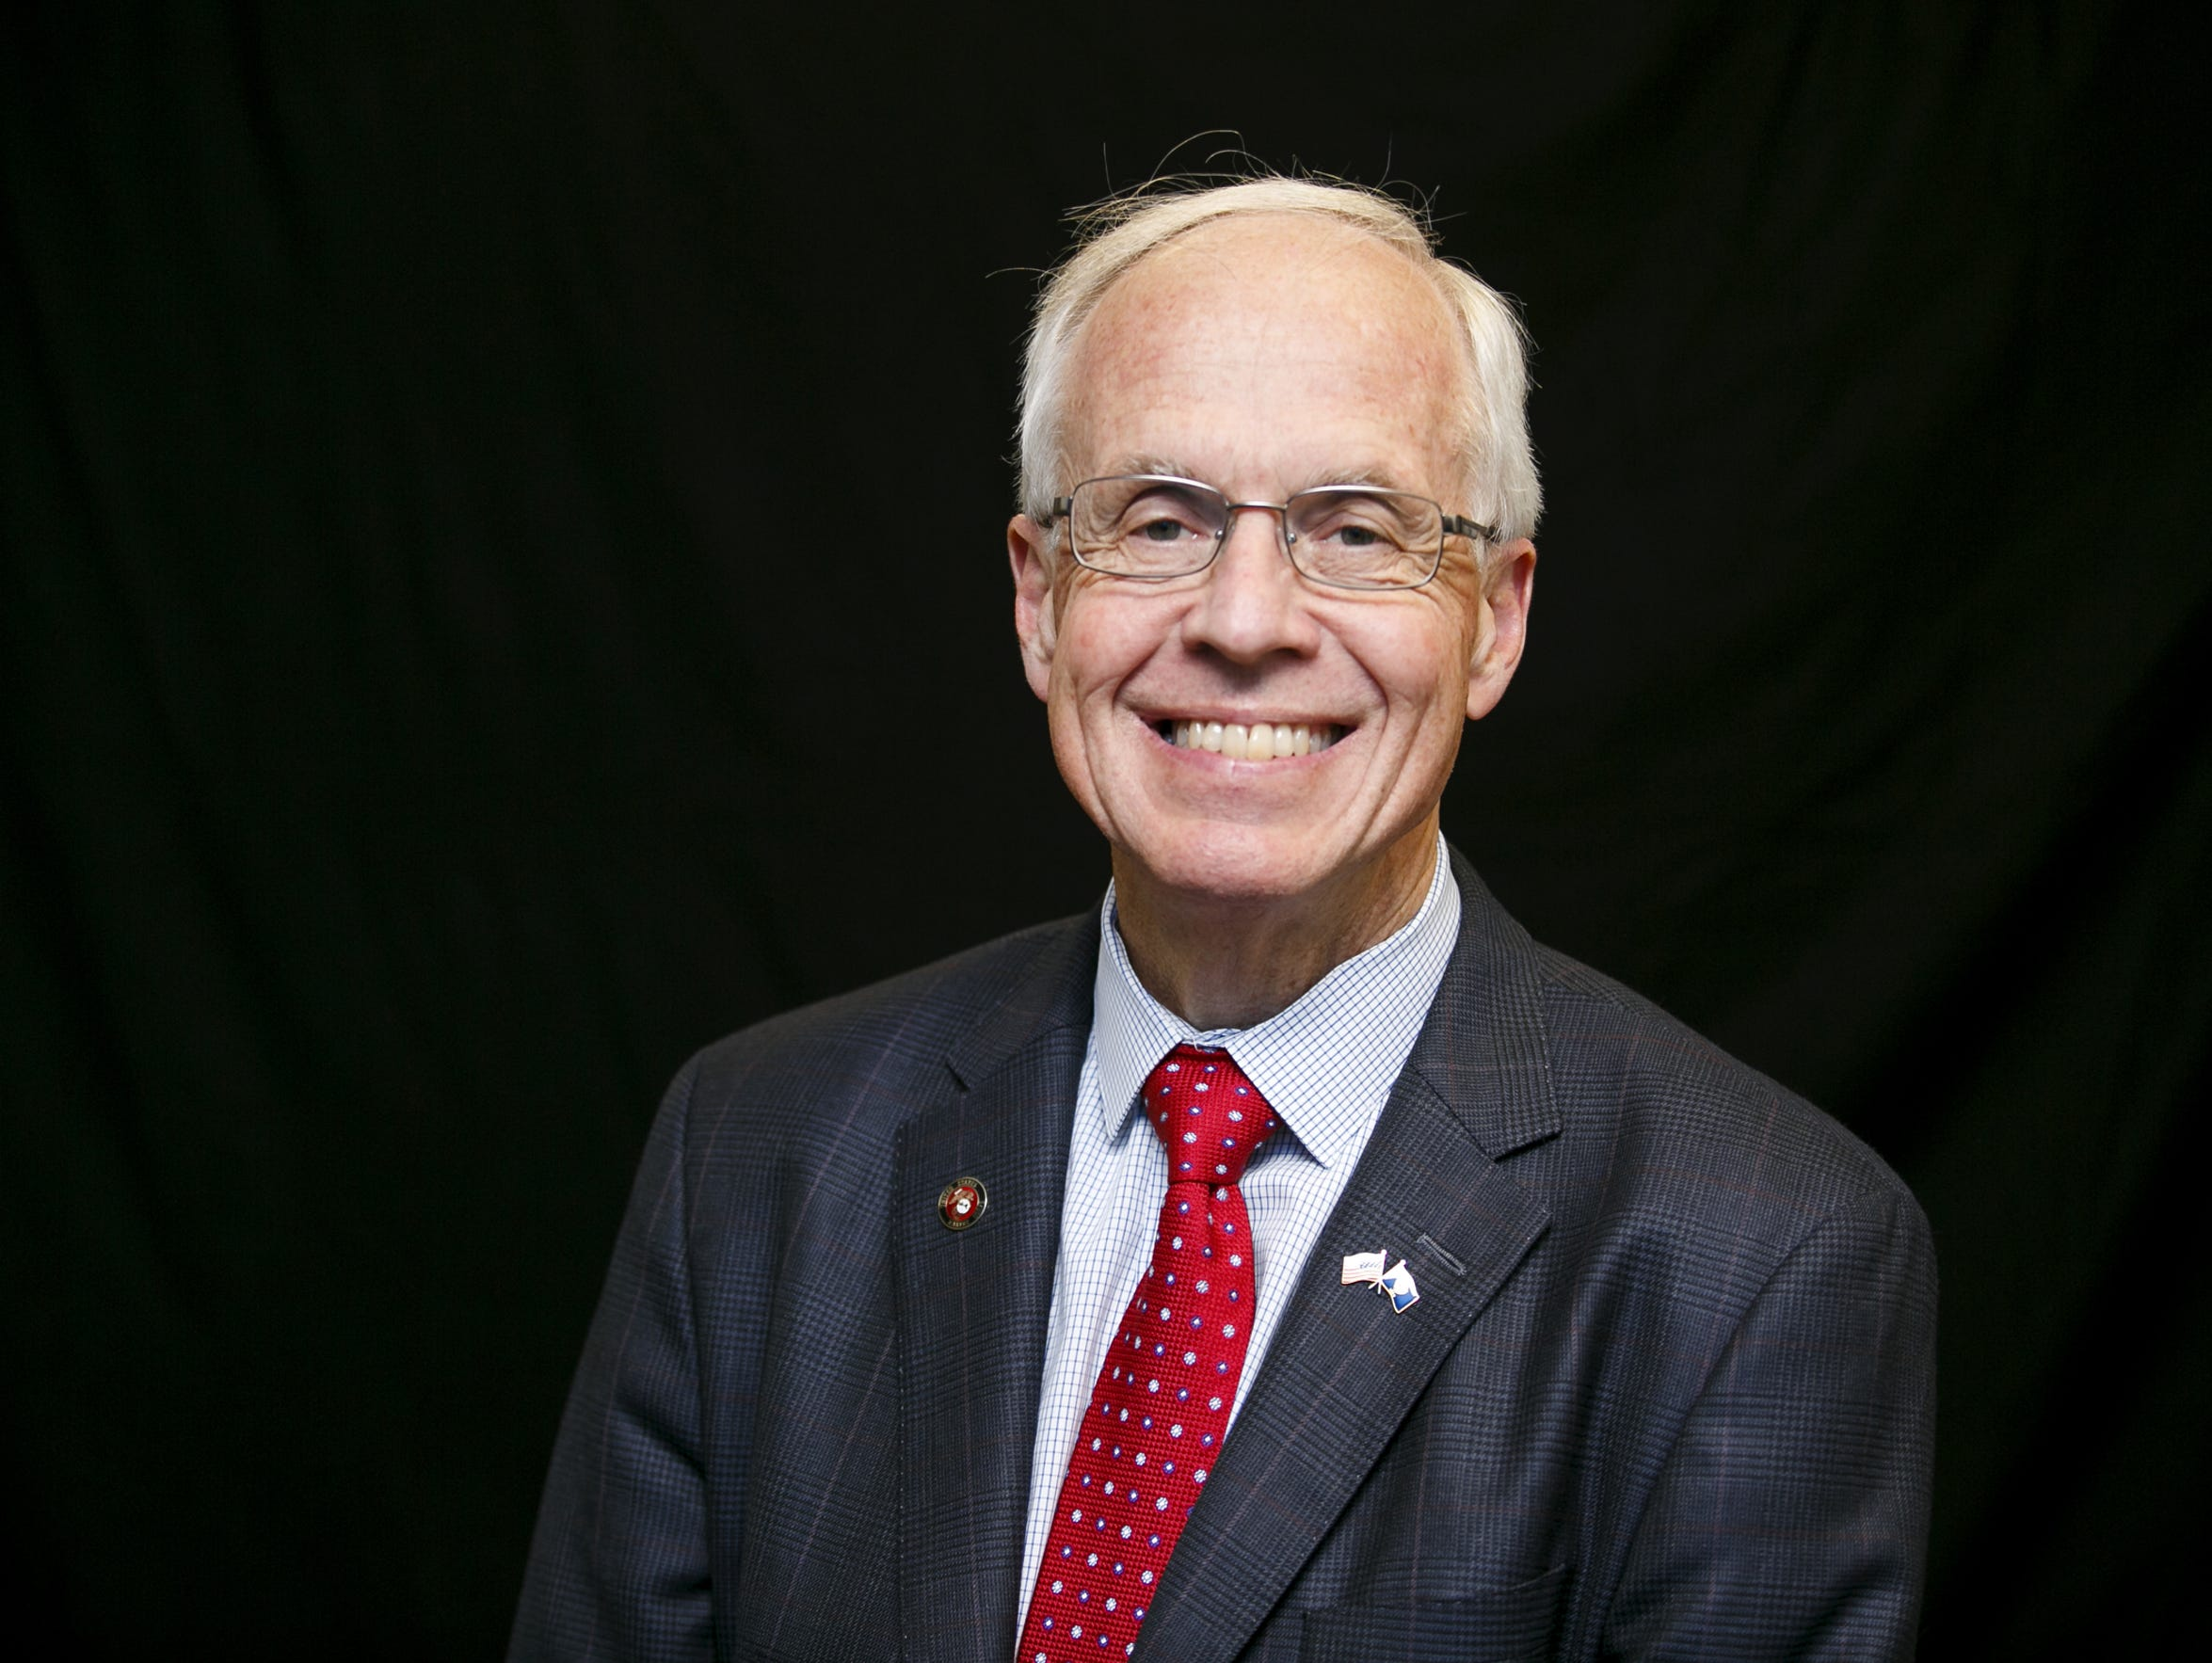 Republican governor candidate and cancer doctor William